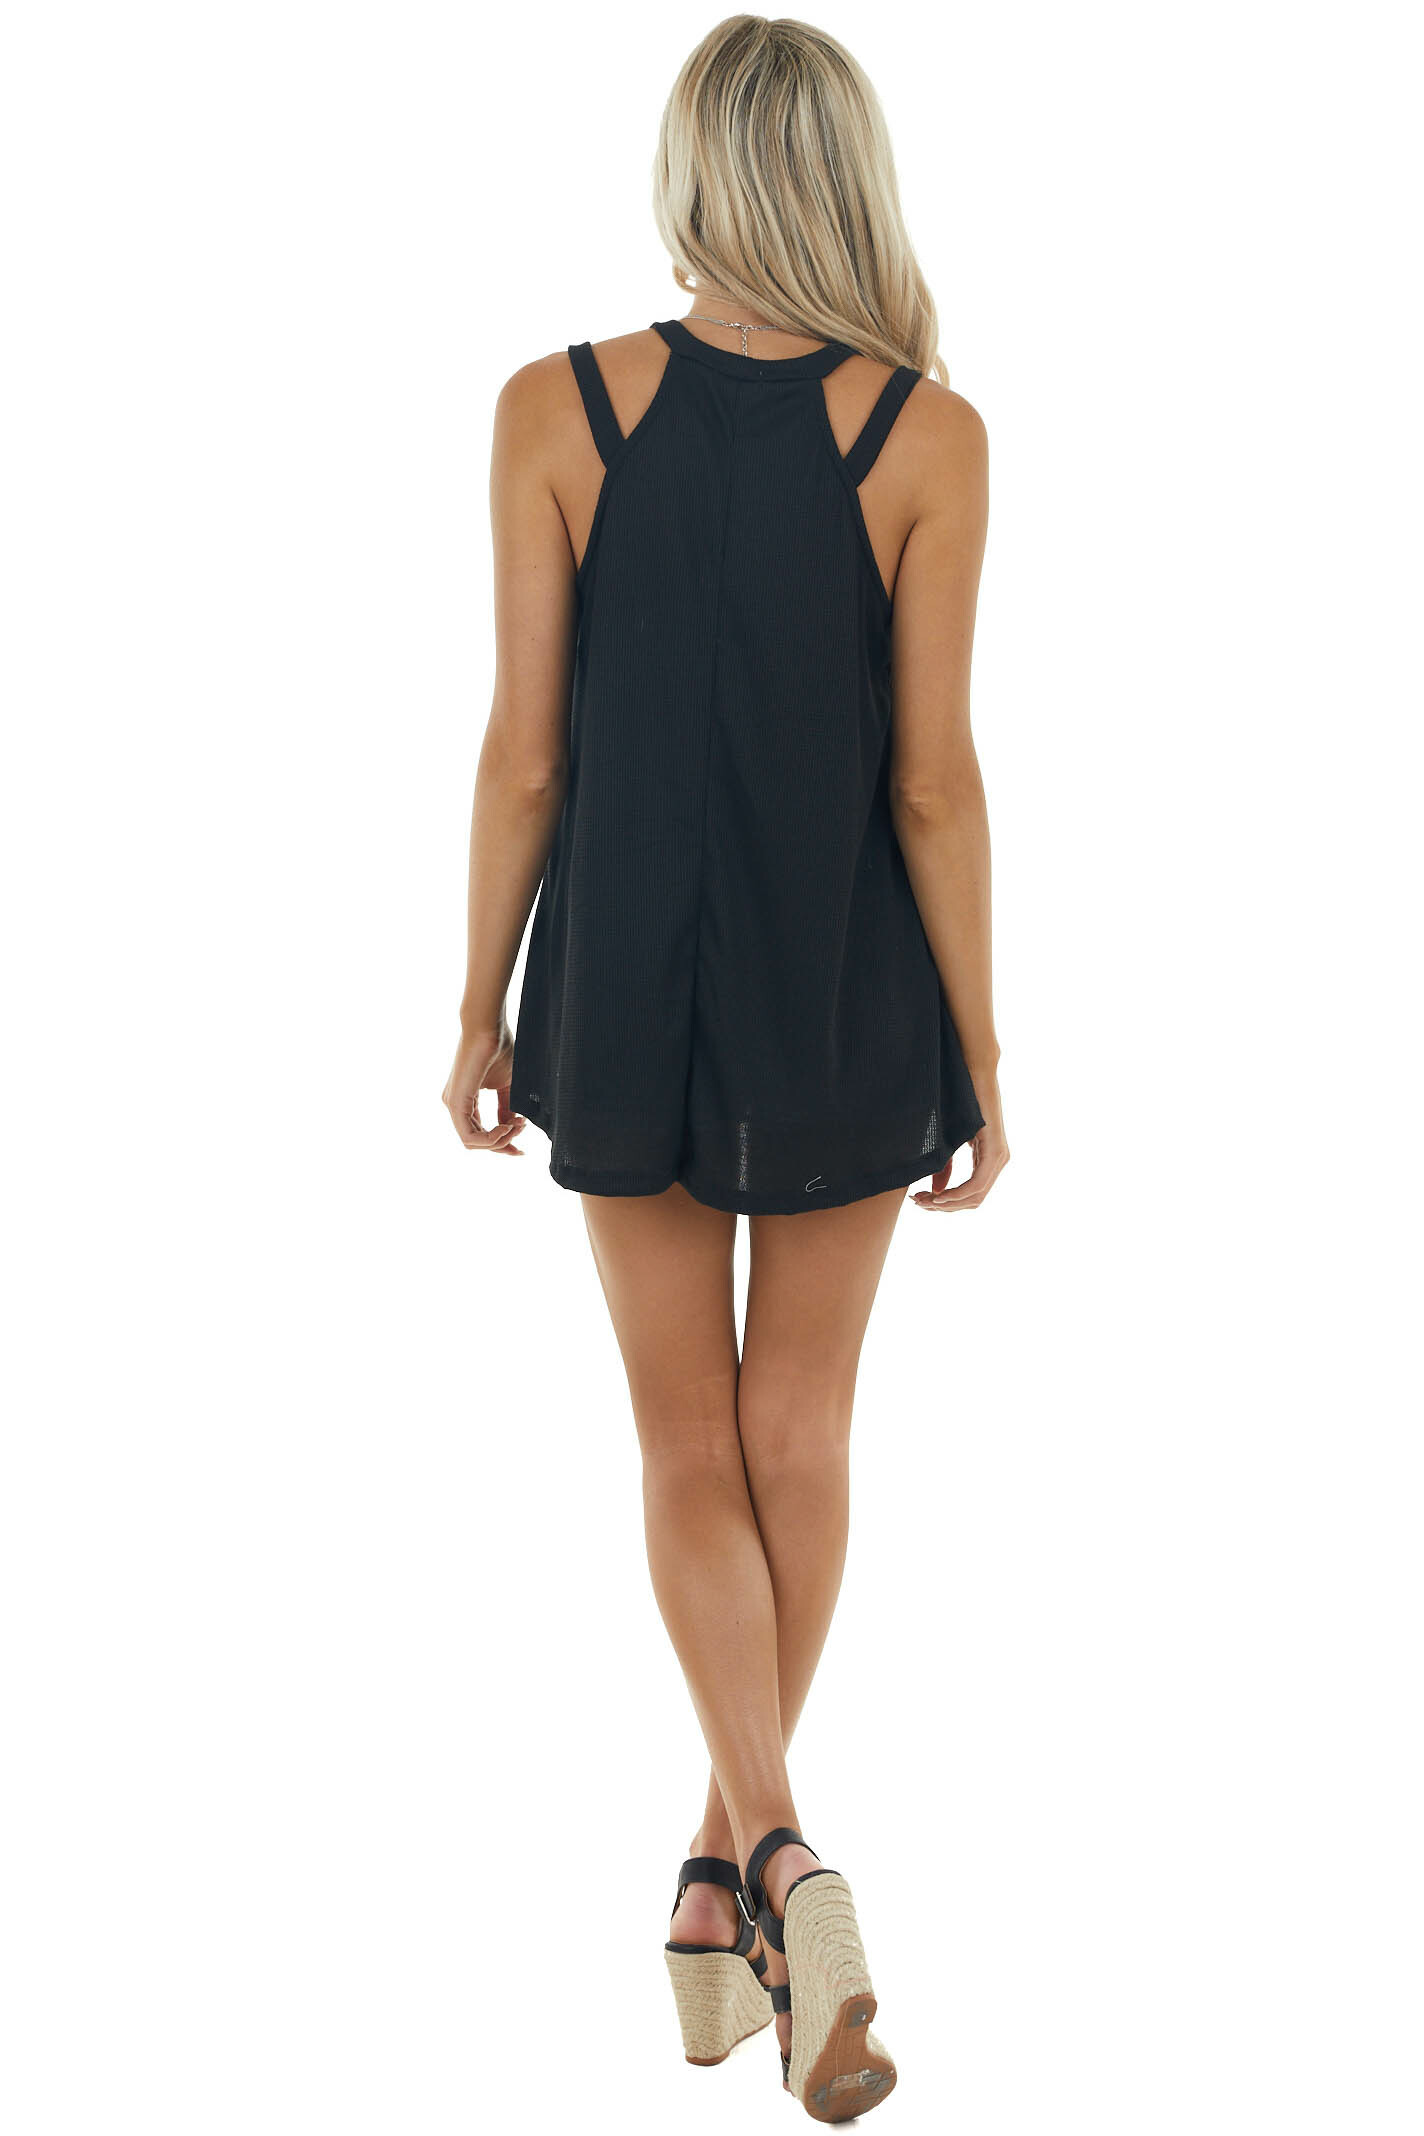 Black Waffle Knit Tank Top with Strappy Halter Neckline